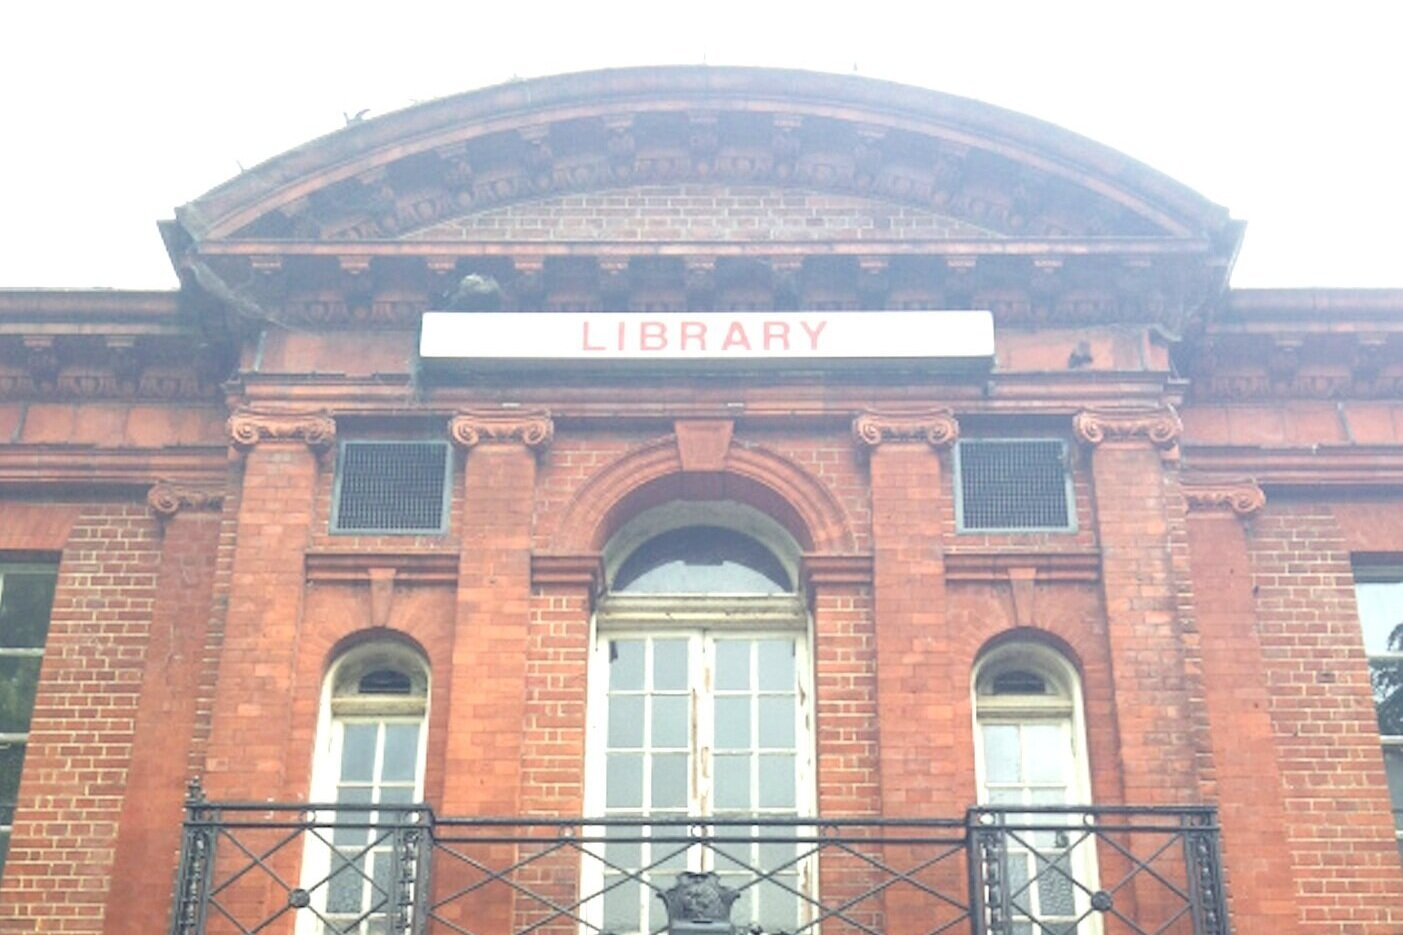 library-sign.jpg